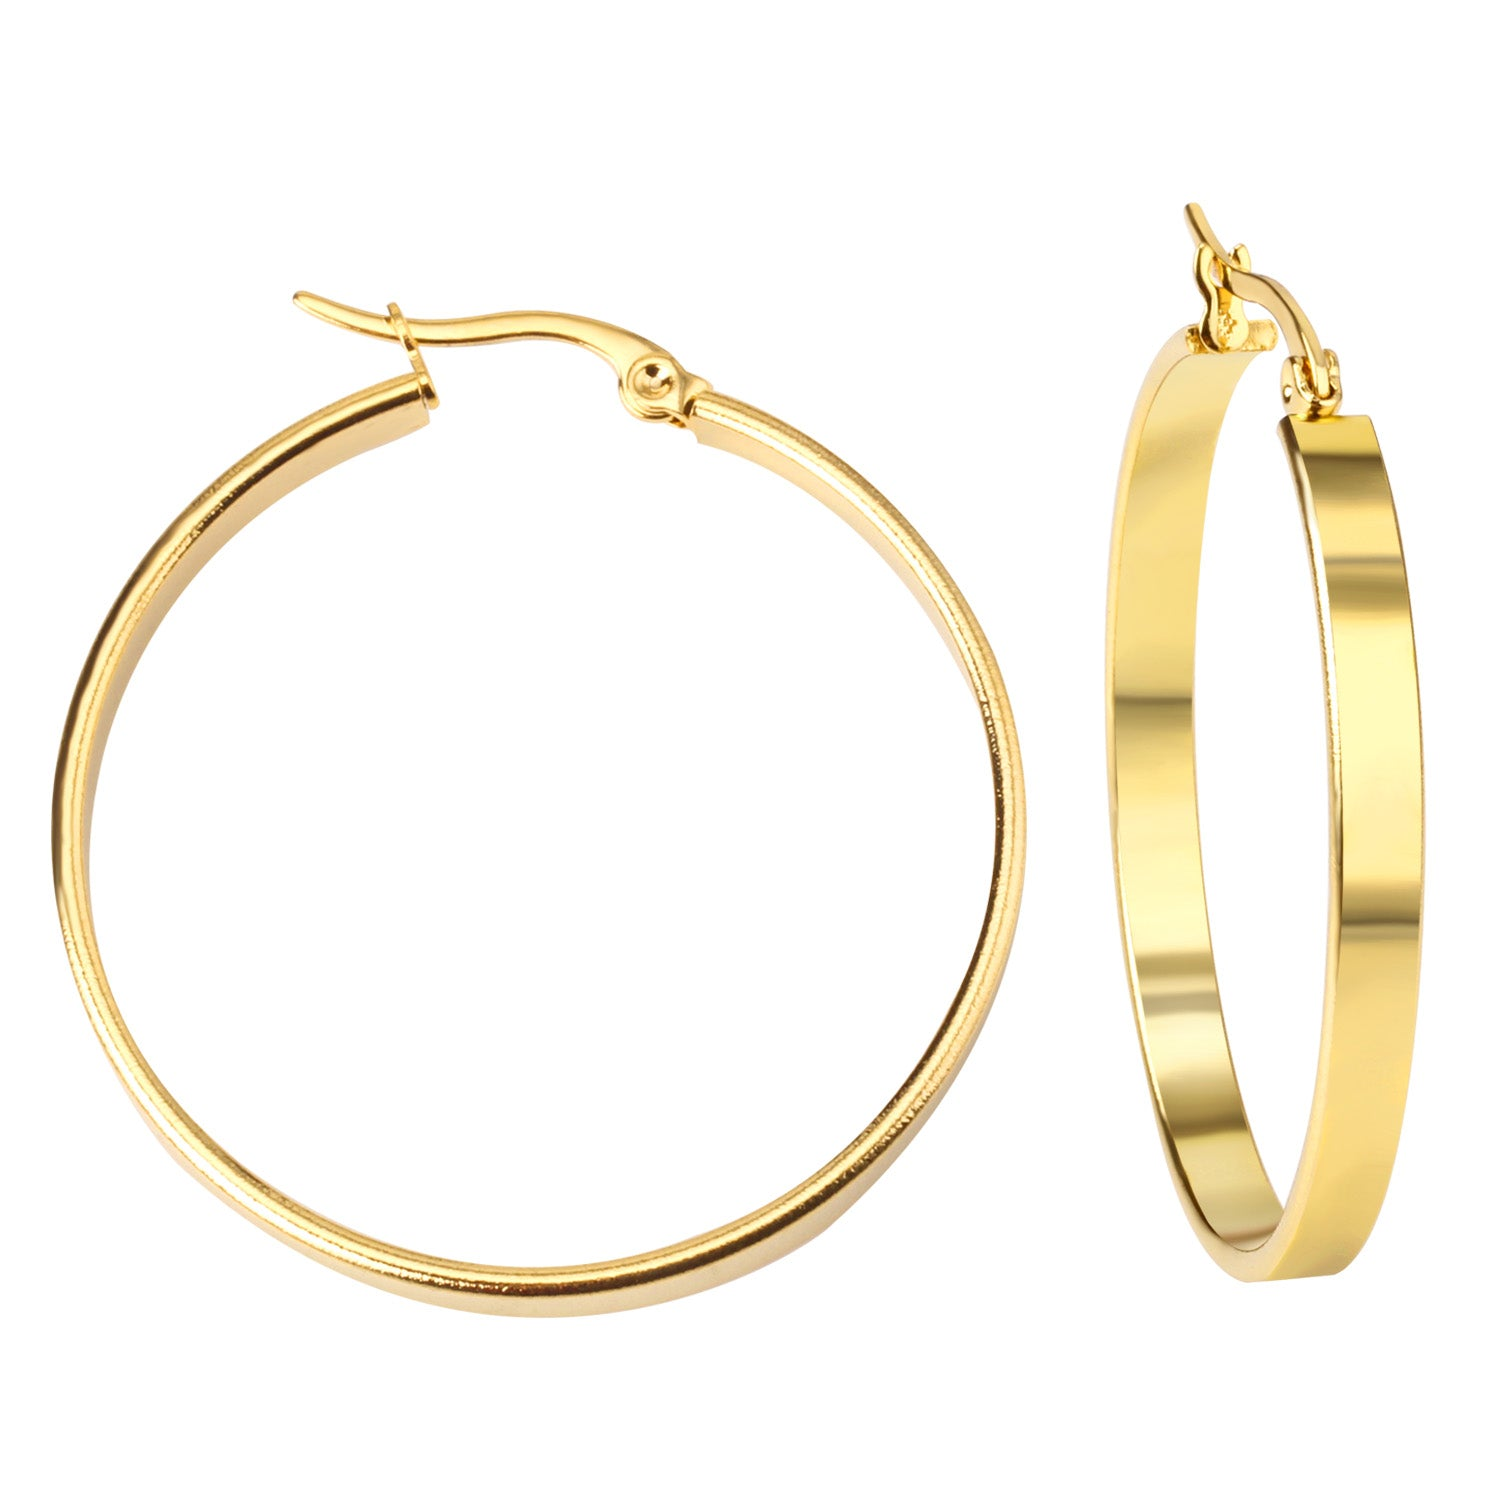 round white plain hoop earrings jewellery creole webstore jones ernest gold product number d